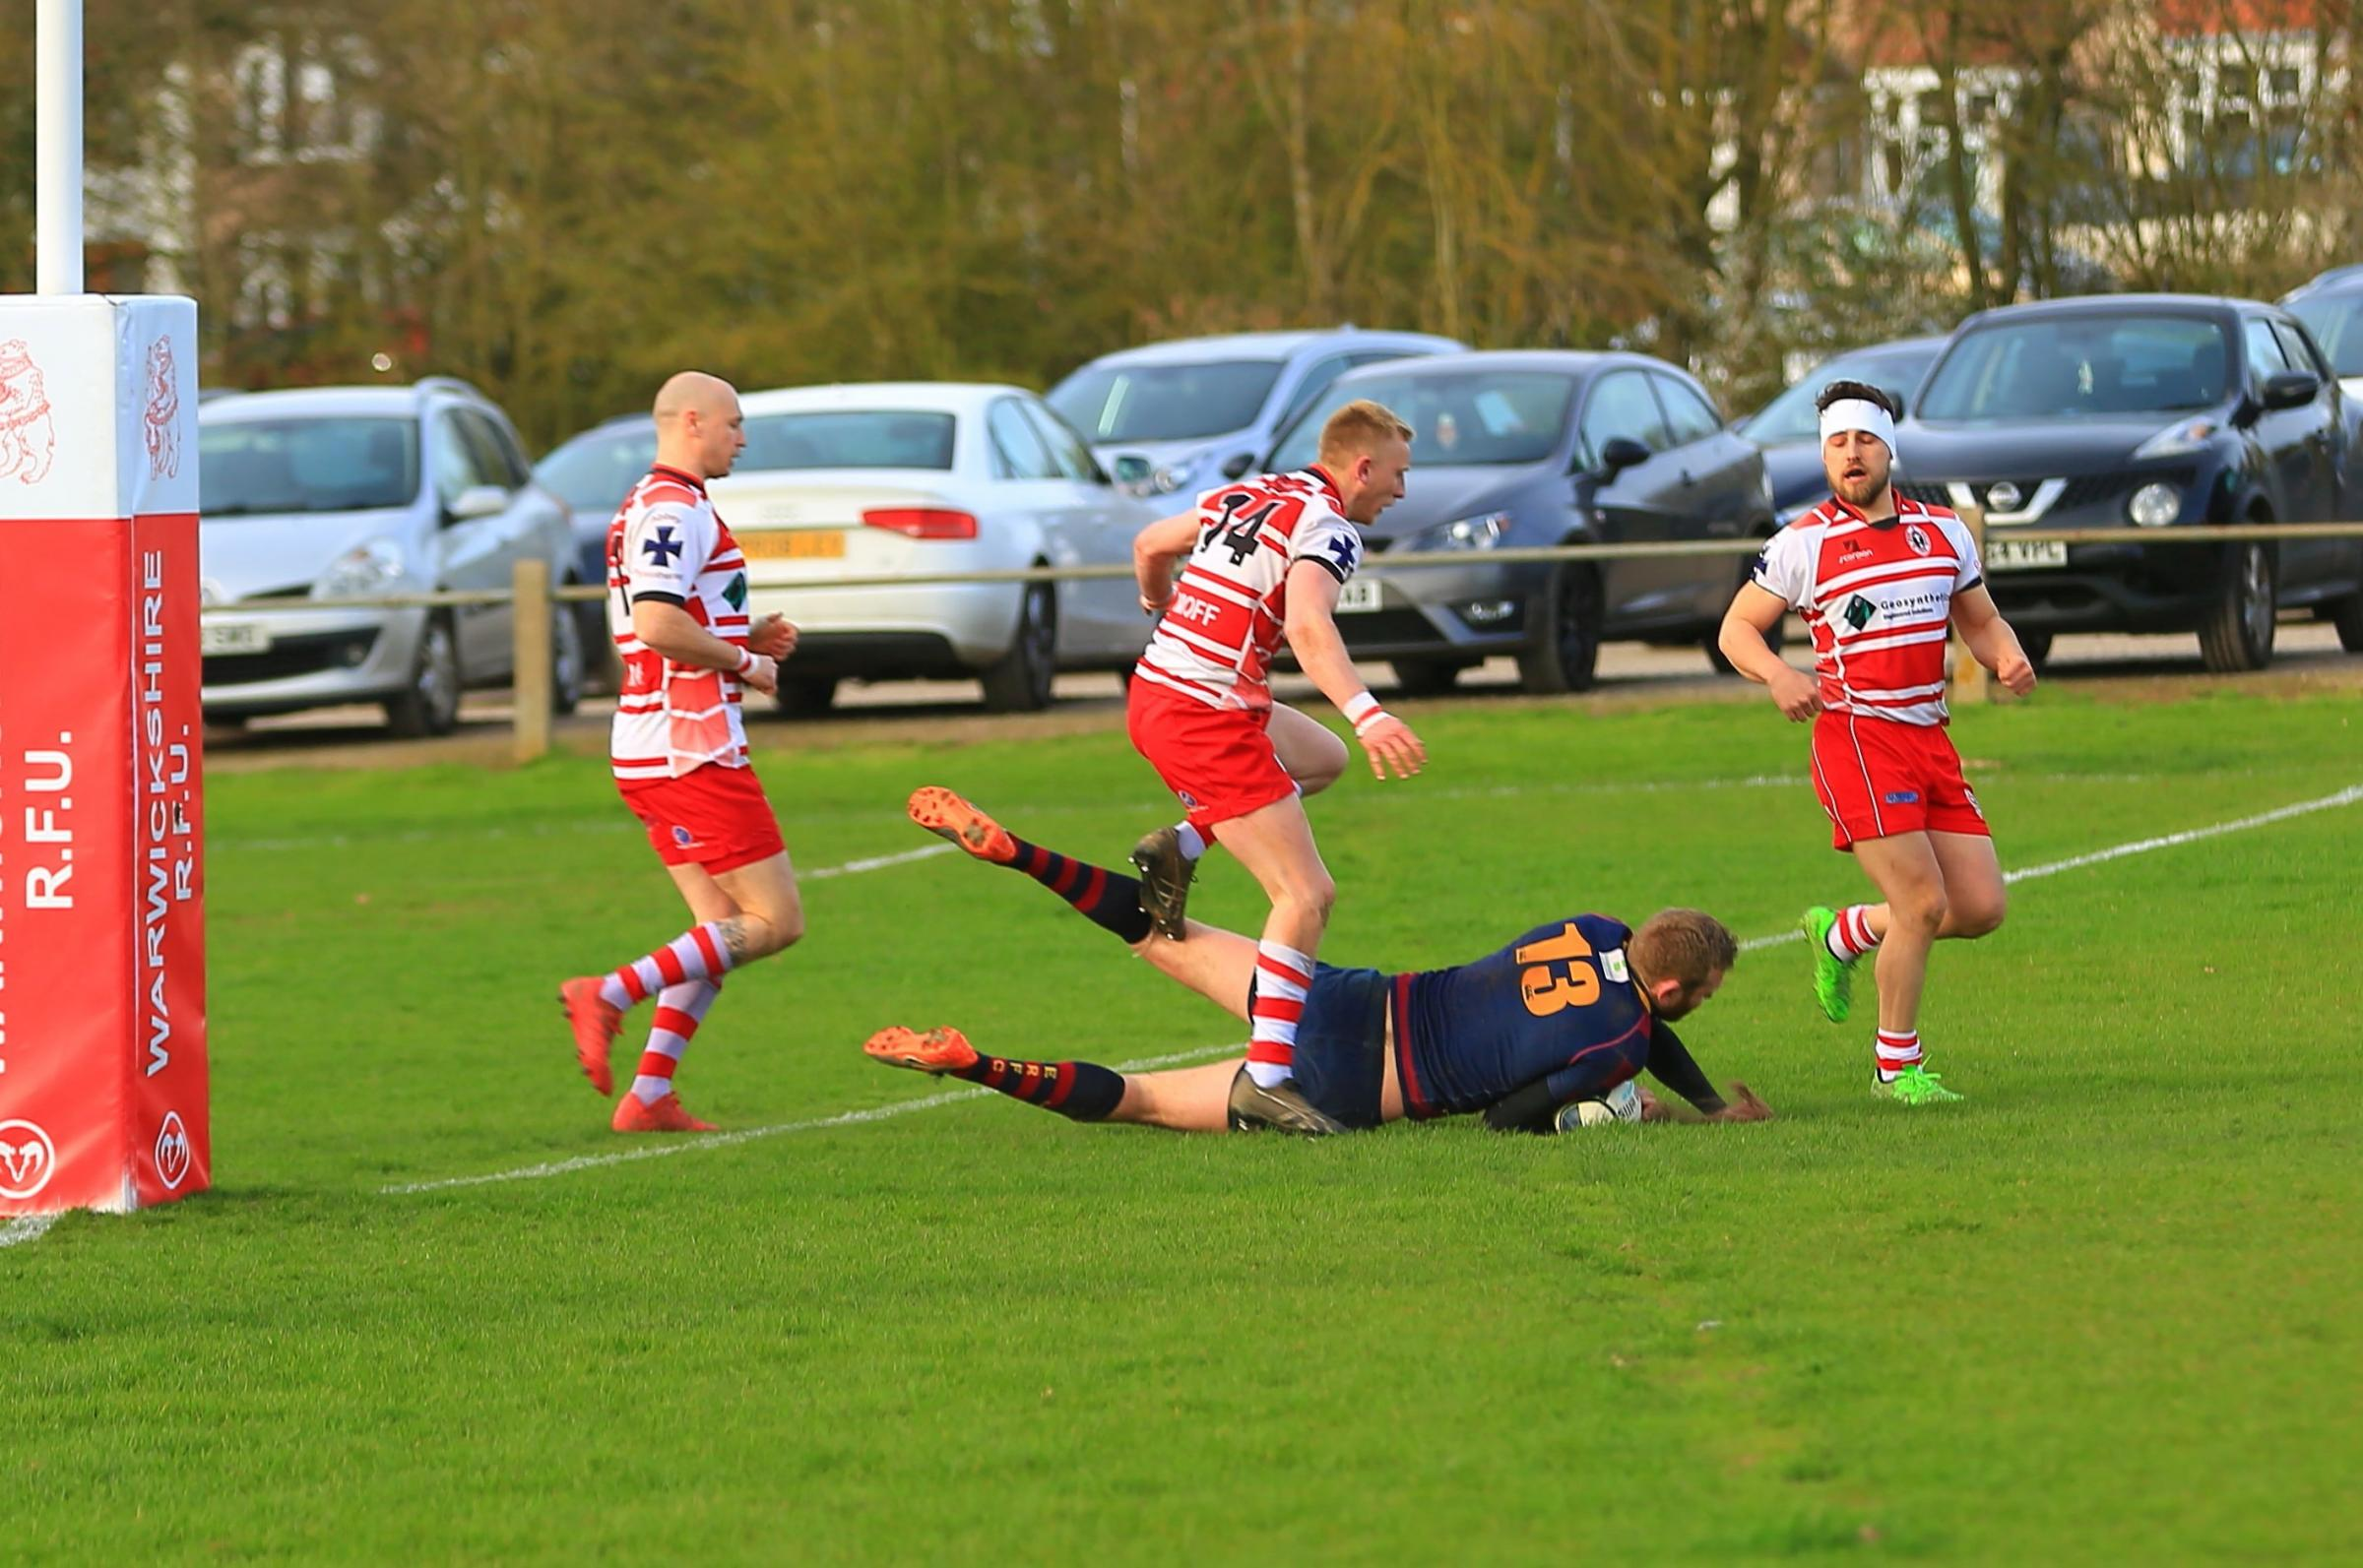 TRY! Evesham's Andy Robinson scores. Pic: Roland Bailey